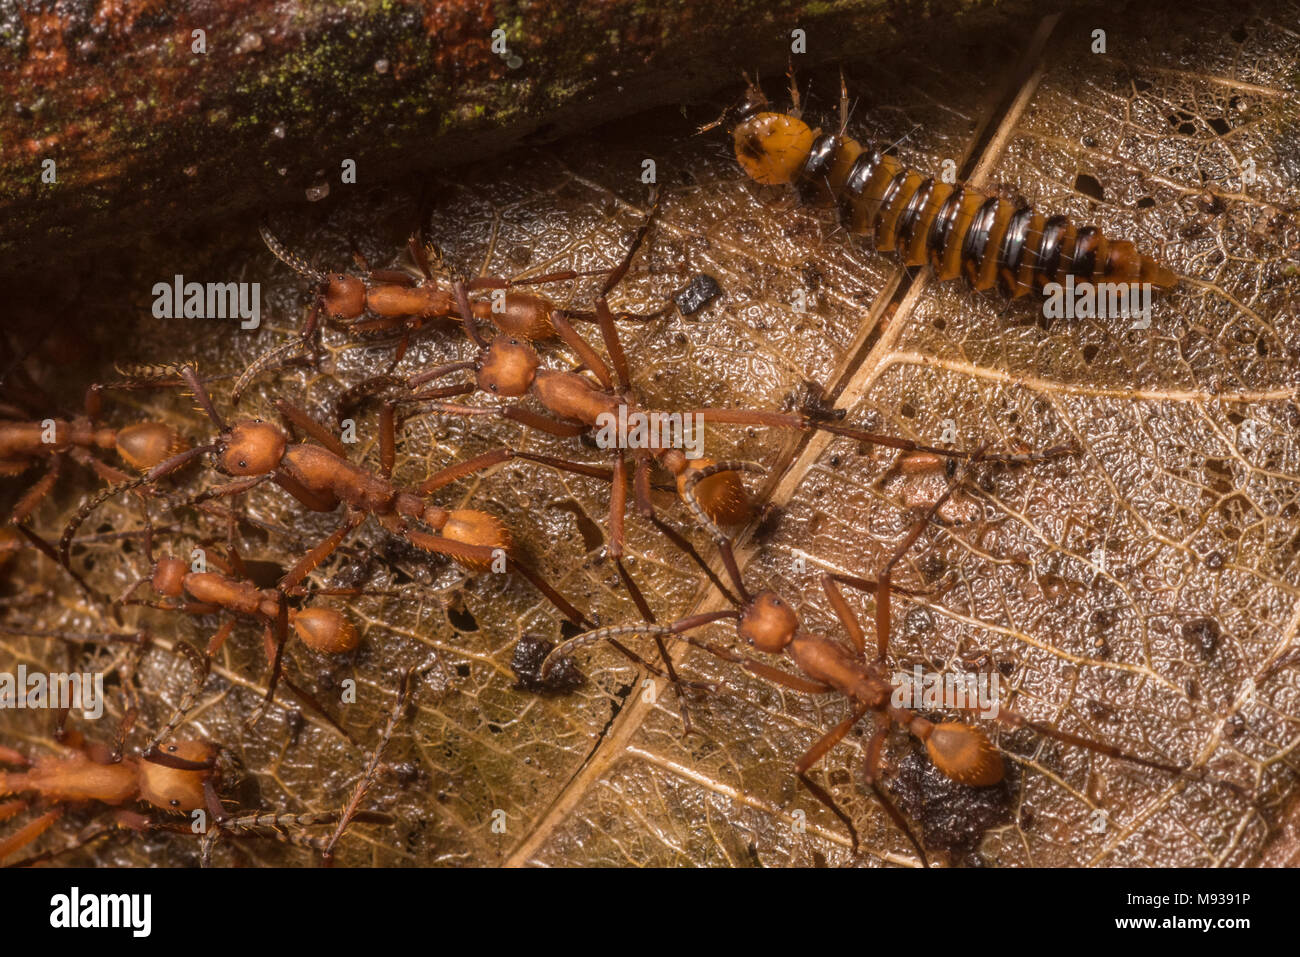 Army ants (Eciton sp) move across the forest floor accompanied by a rove beetle larva (Vatesus sp) a beetle species found in association with ants. - Stock Image